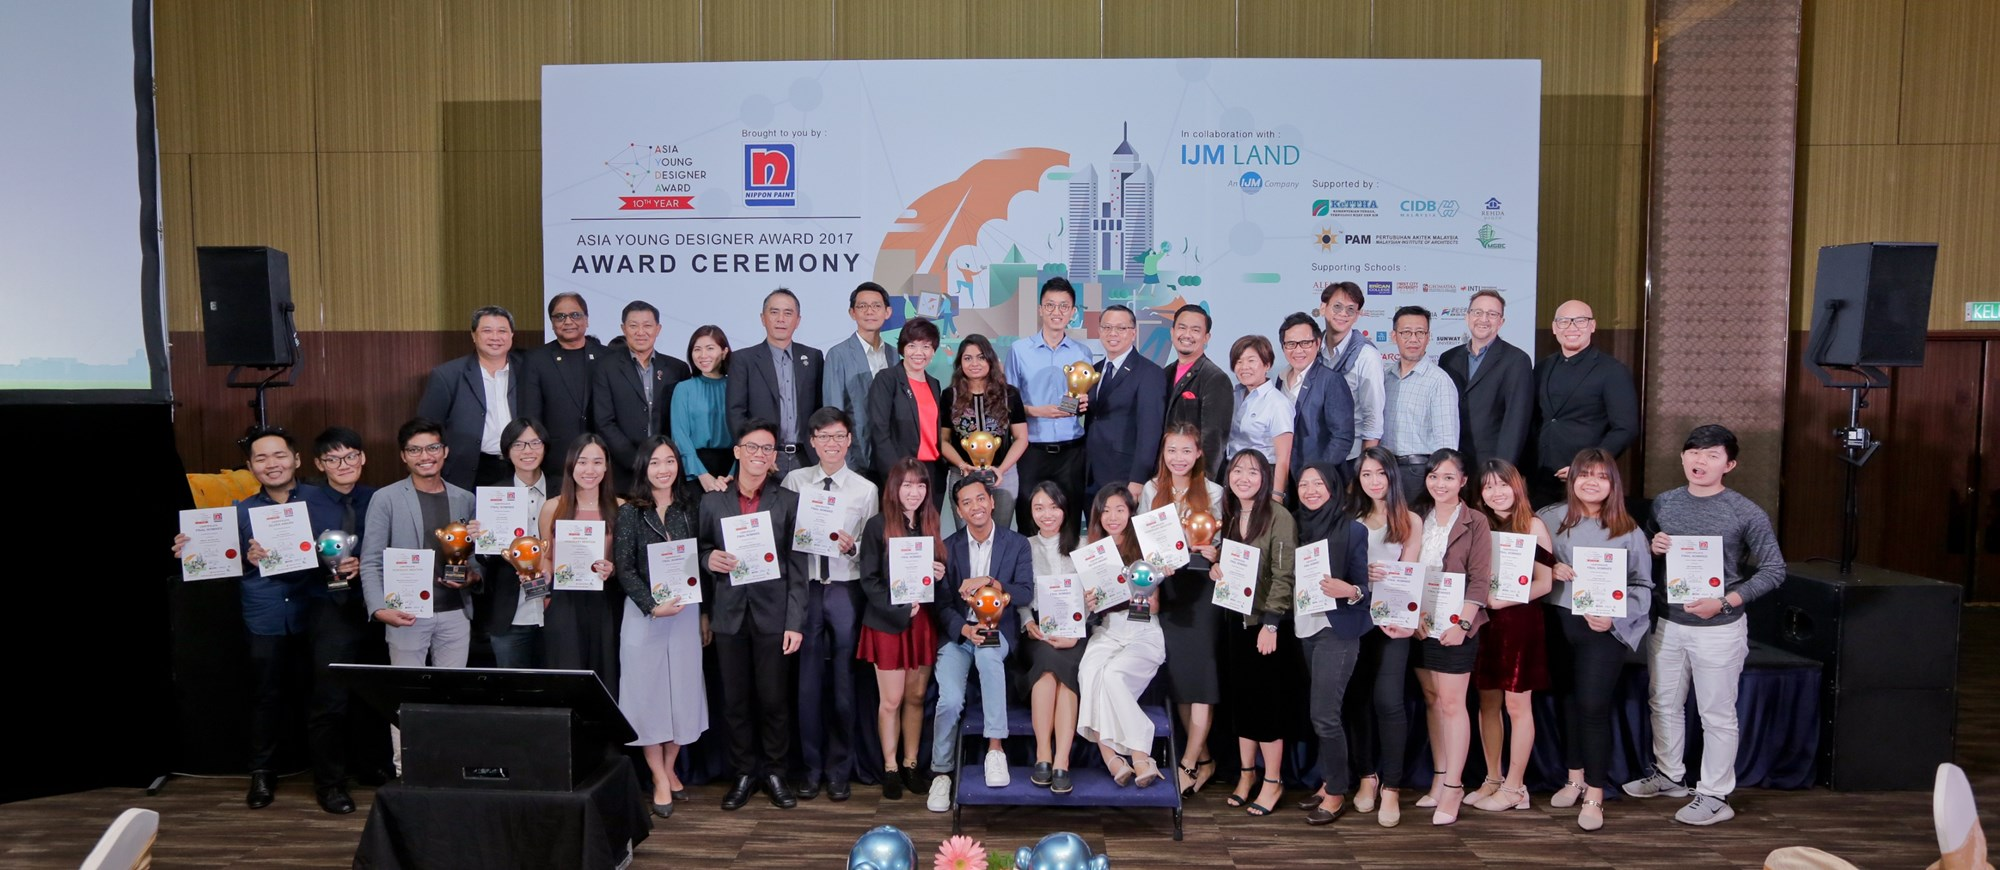 Participants and winners of the Malaysian Asia Young Designer Award 2017